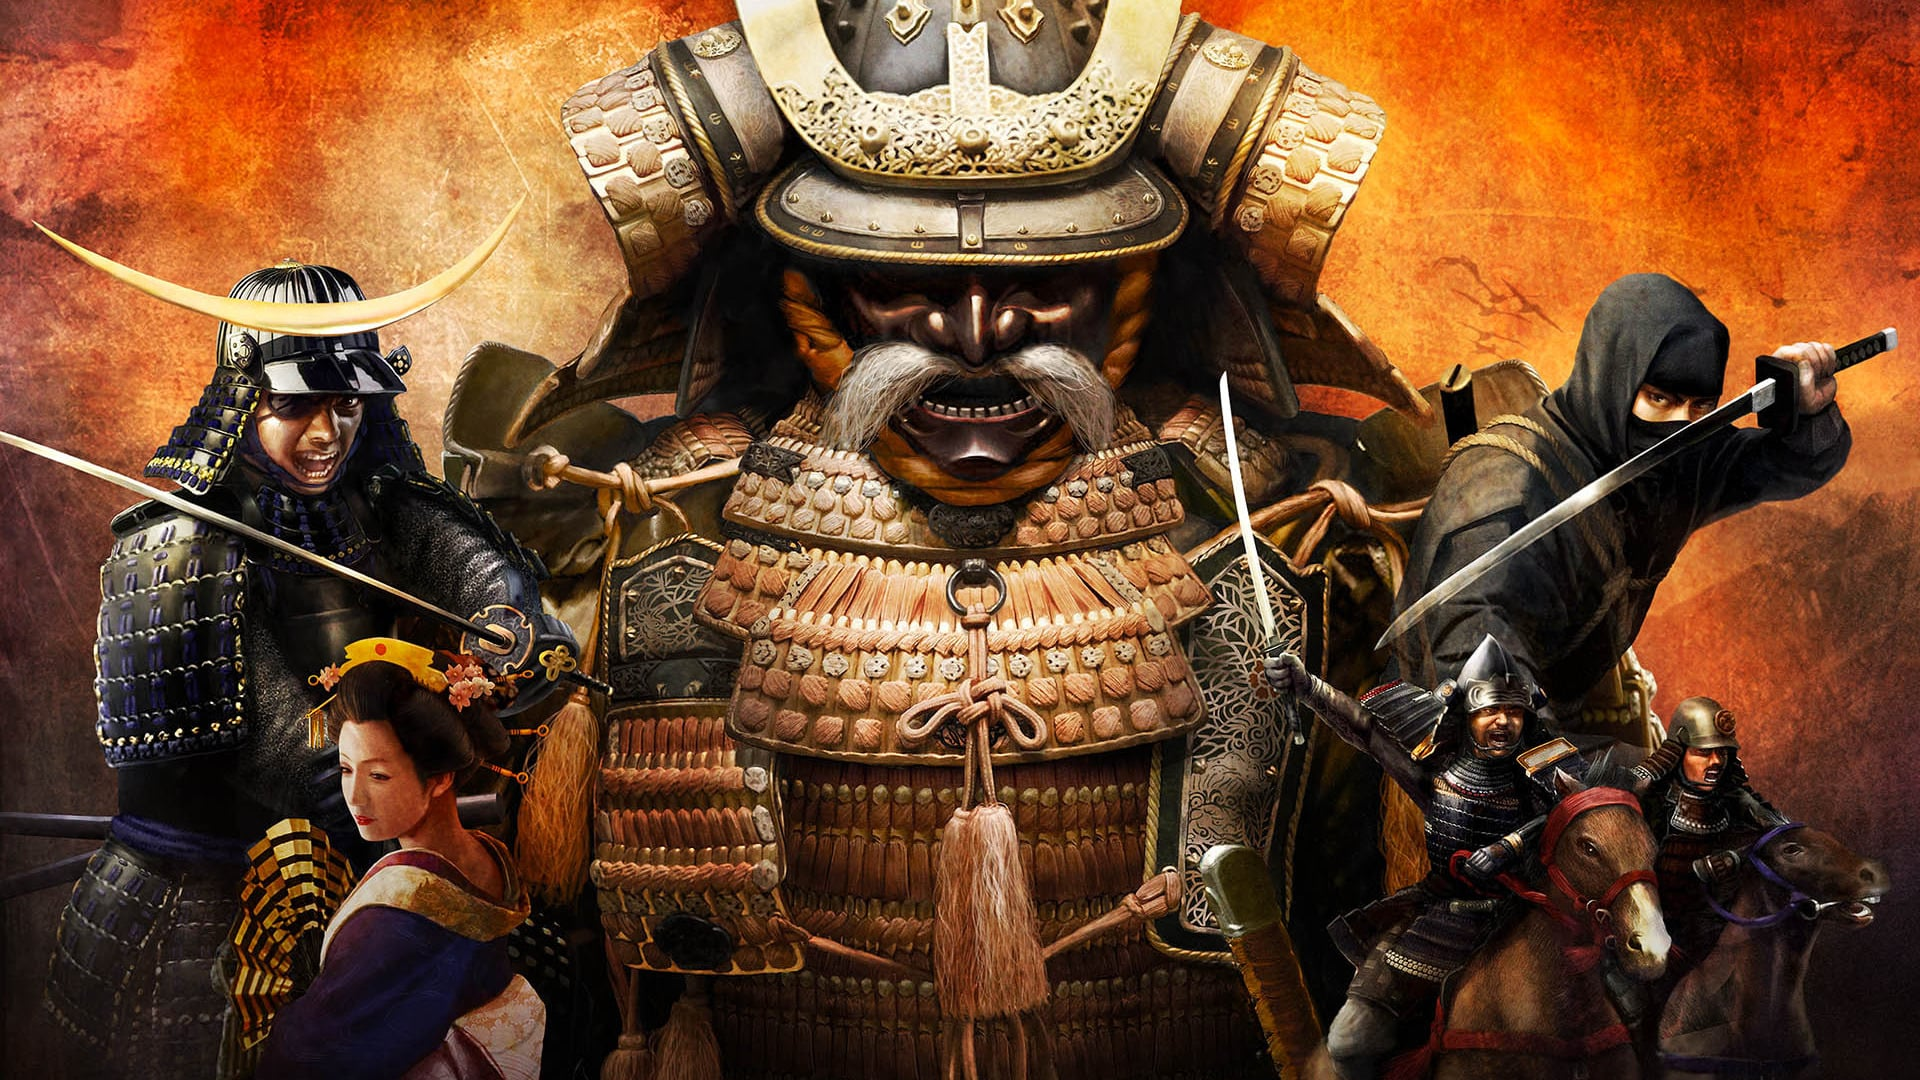 30 Samurai Wallpapers Hd Free Download